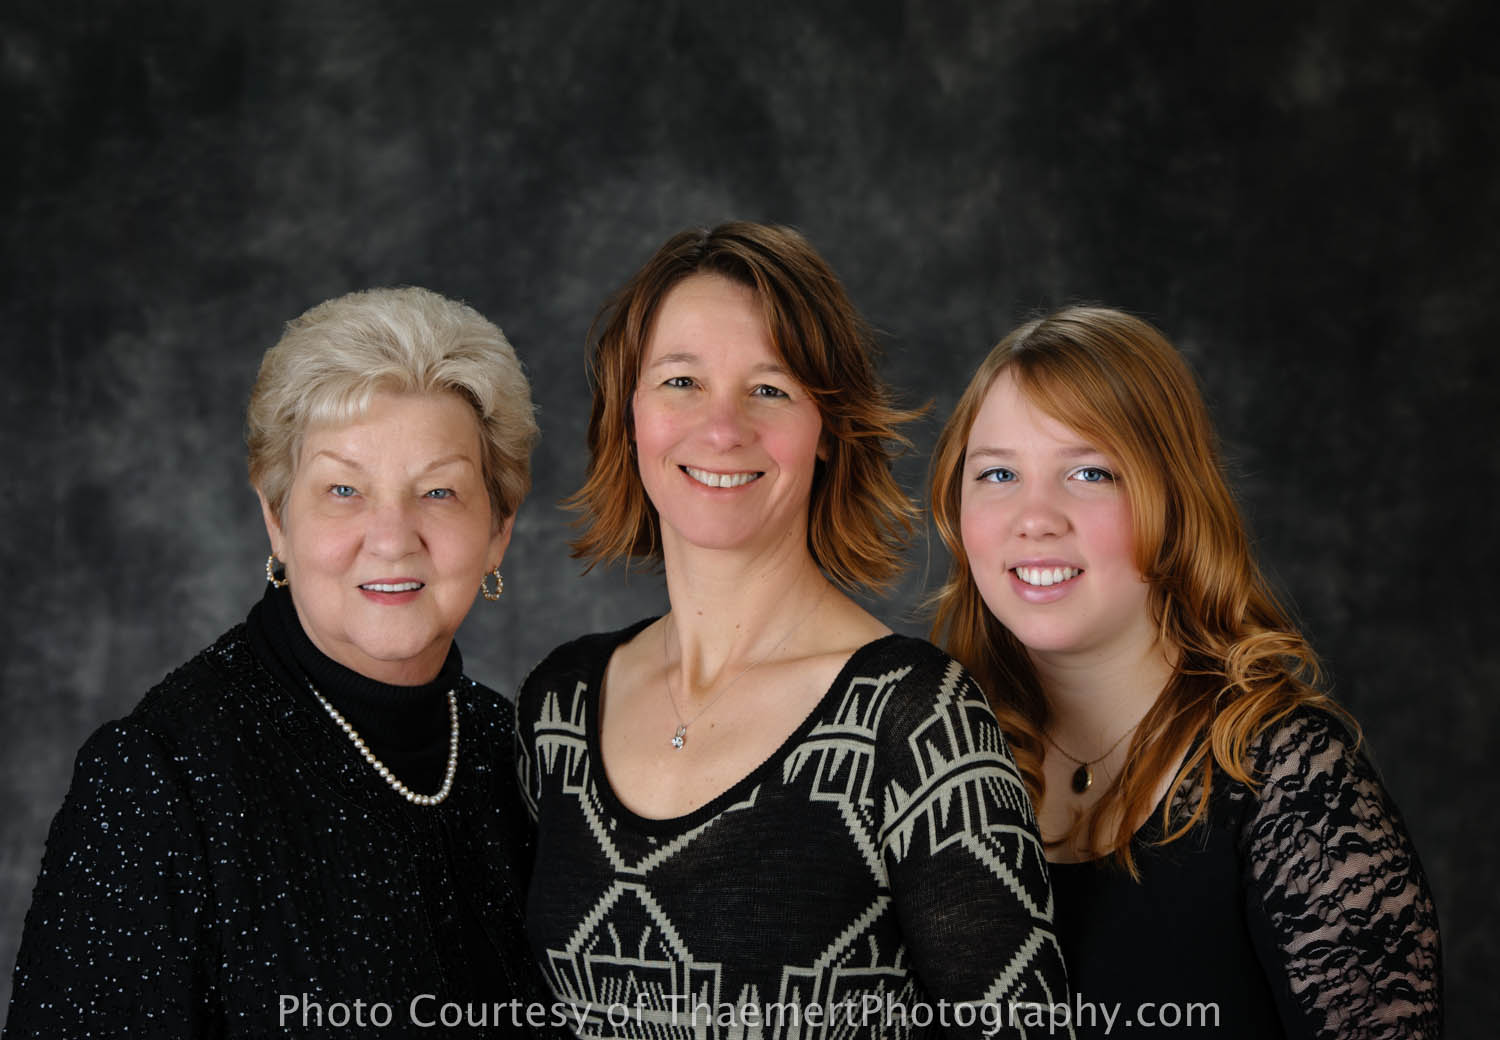 St Charles Family Portraits in the photography studio